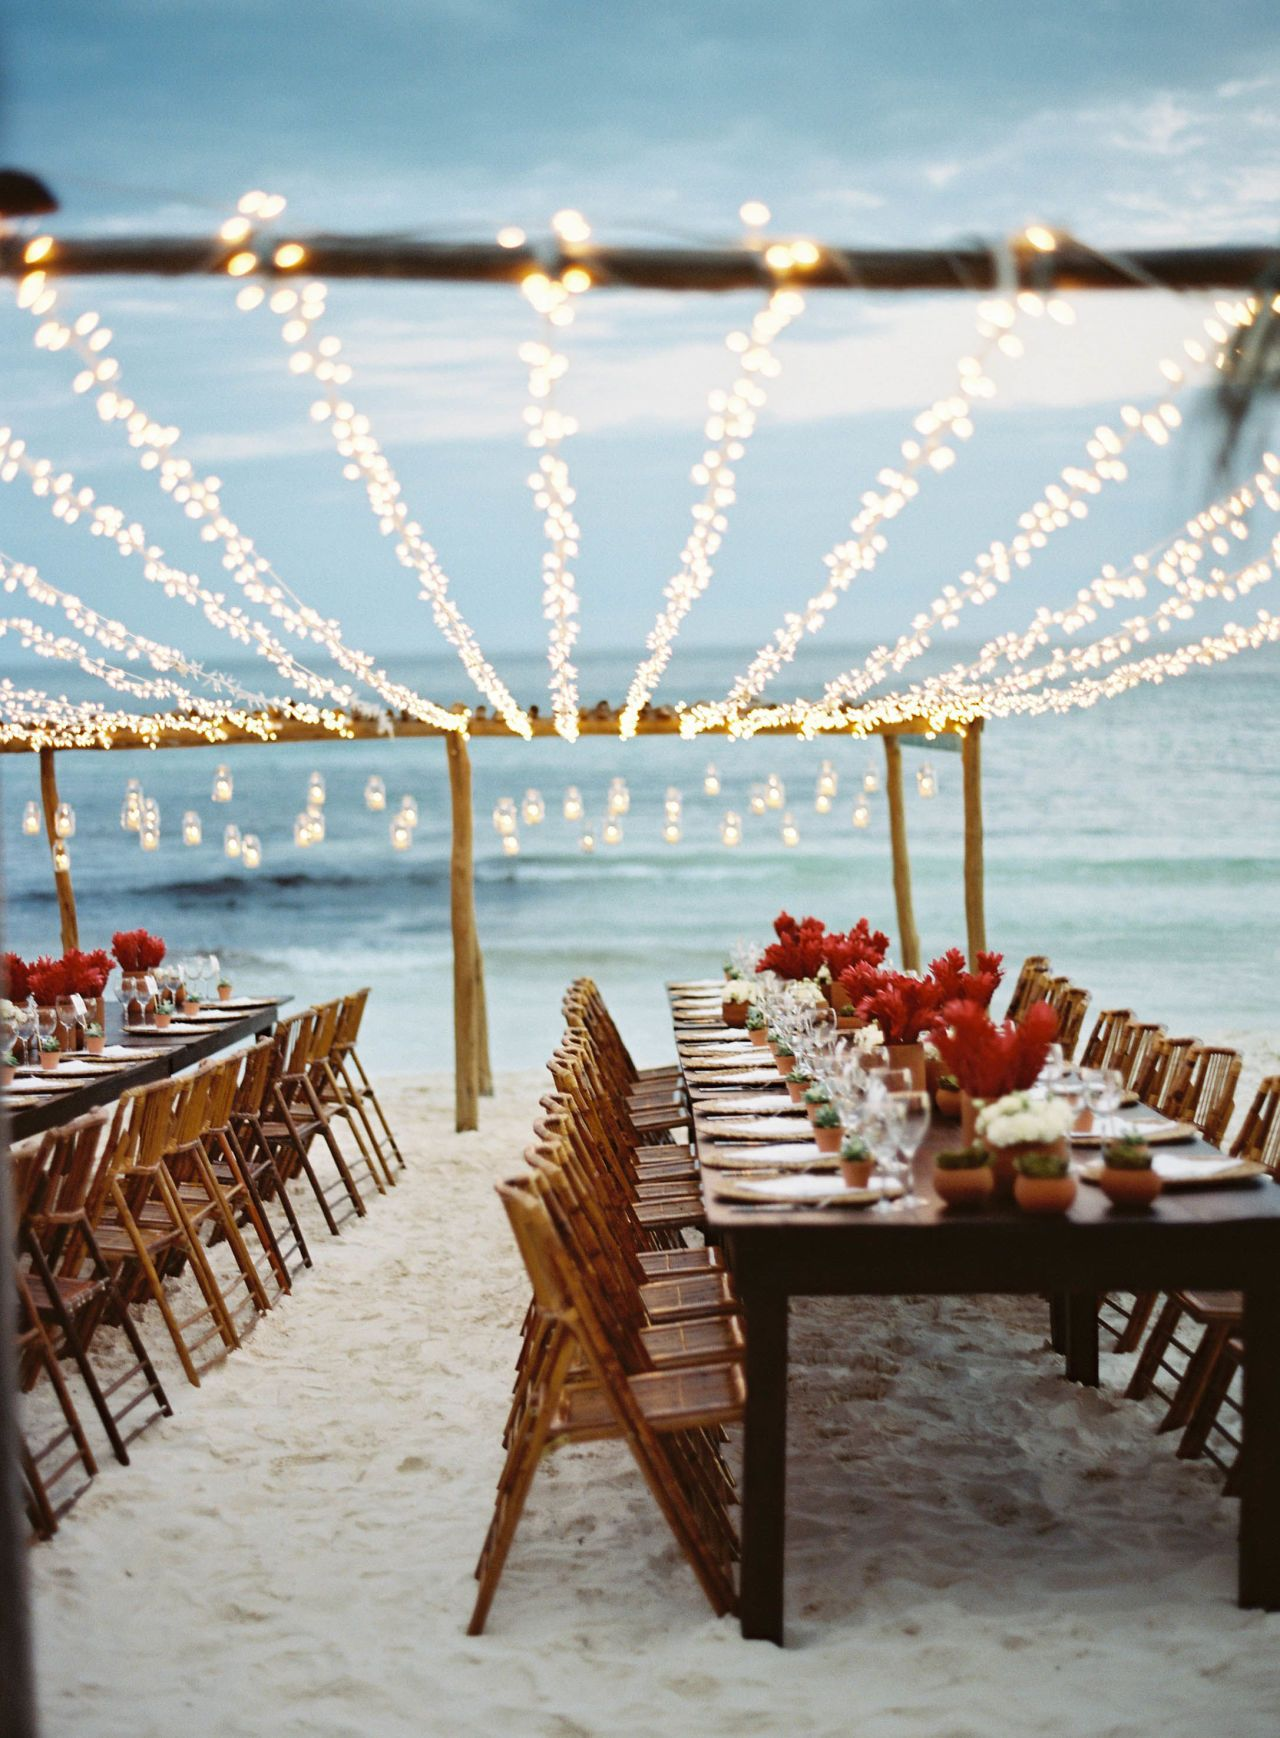 living lighting beaches. Beach Wedding | Lights Red Flowers Photography: TEC PETAJA Living Lighting Beaches